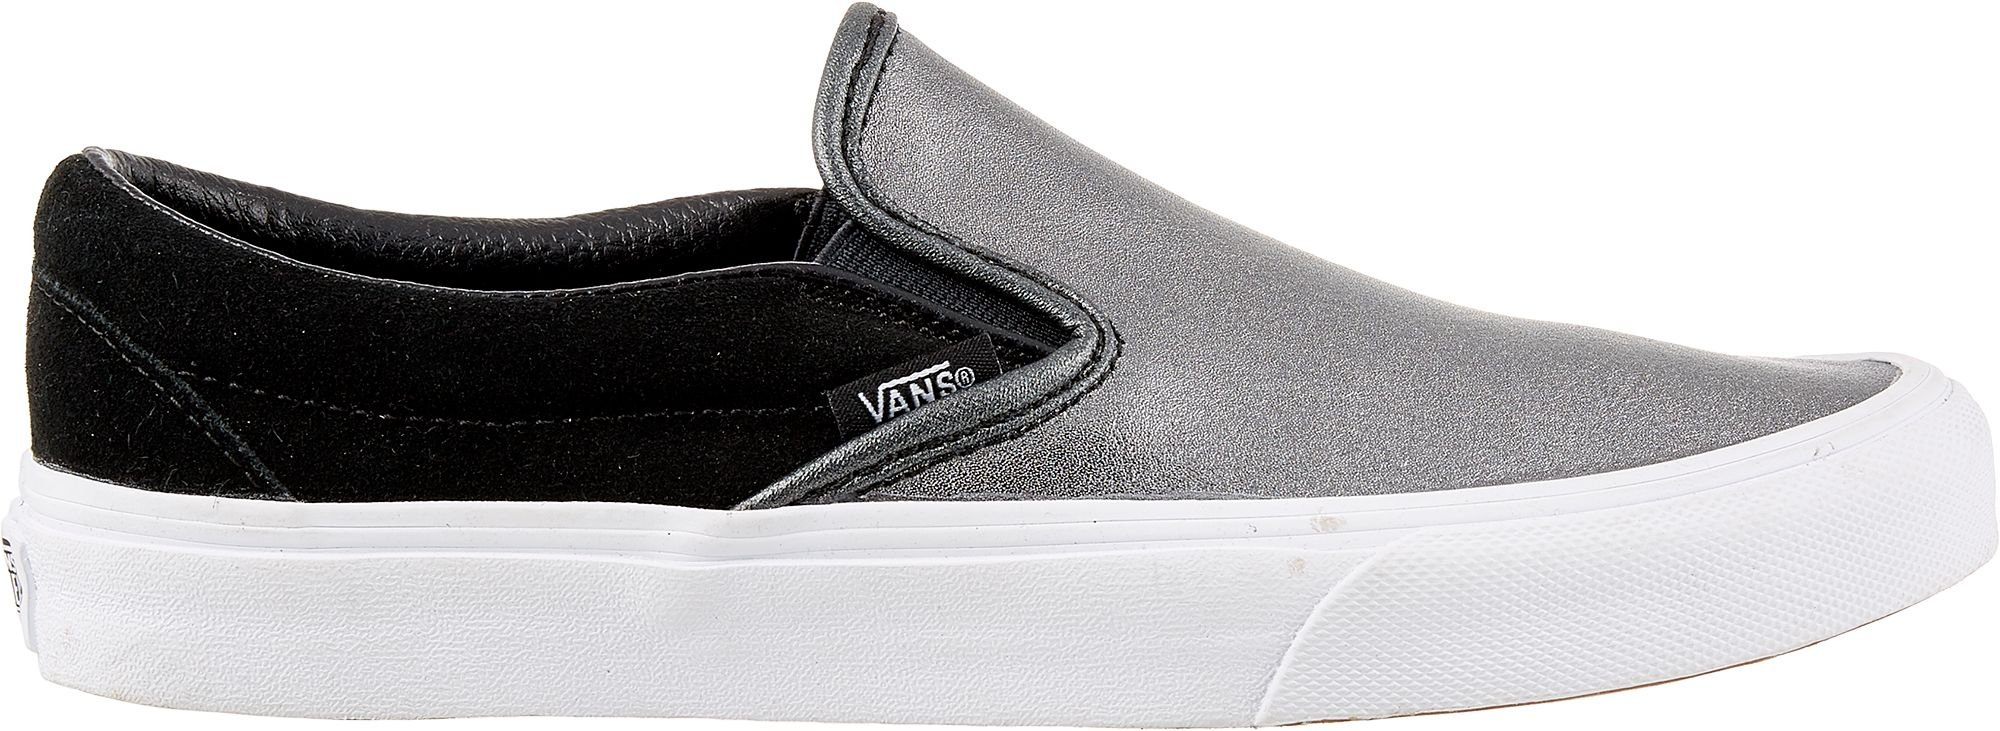 bc67bc0c2c4a Galleon - Vans Women s Classic Slip-on Seasonal Leather Trainers ...